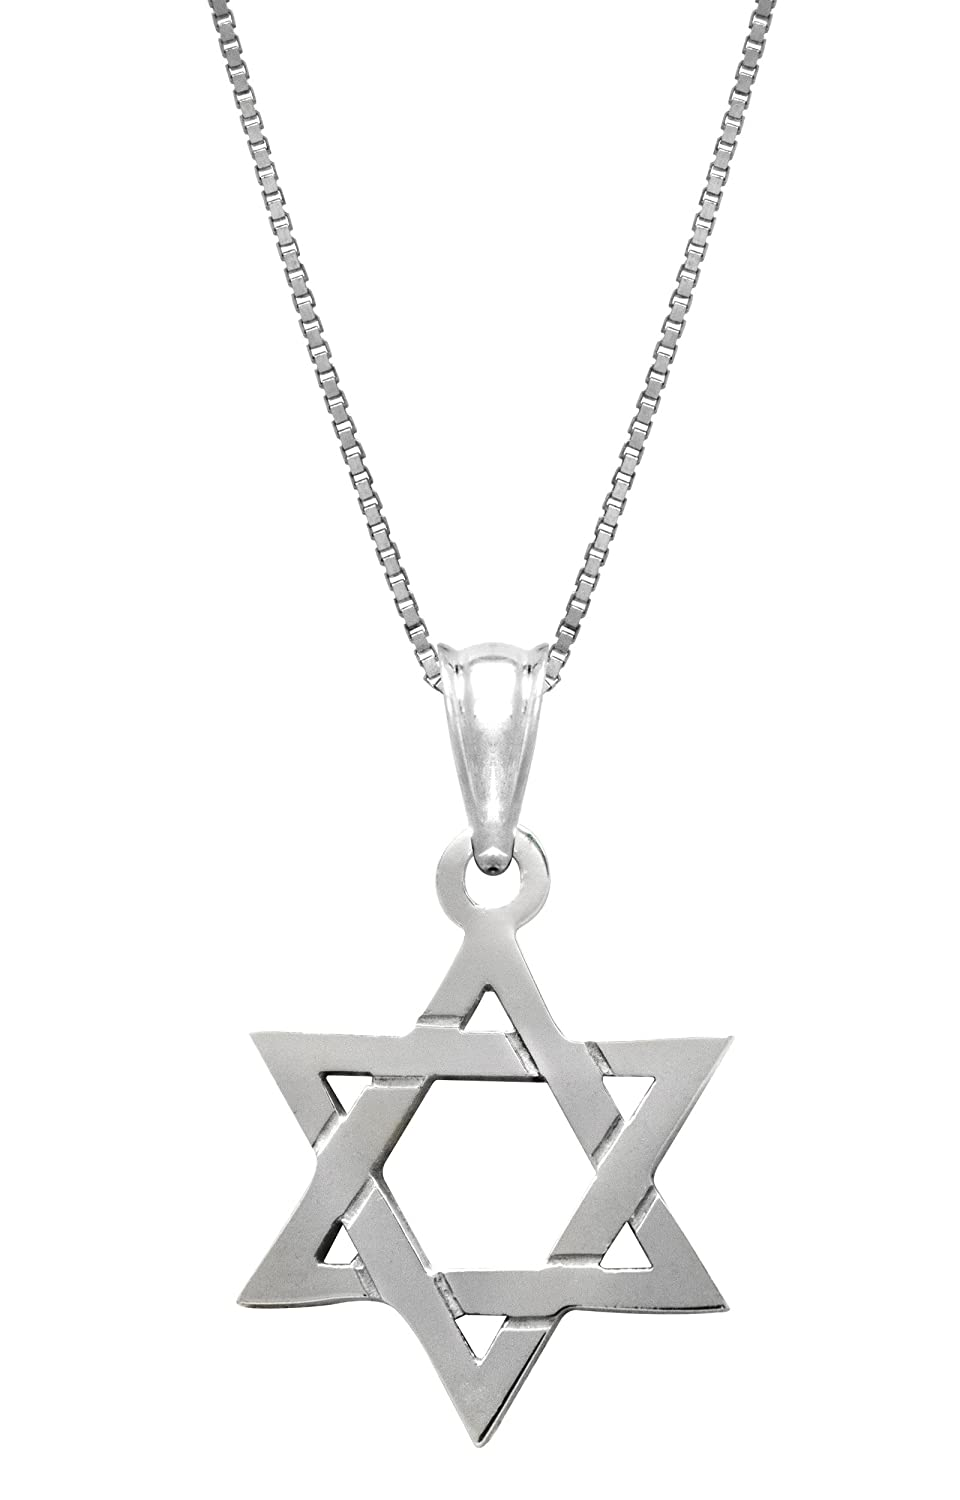 magen kabbalah pin necklace merkaba dainty star of david gold